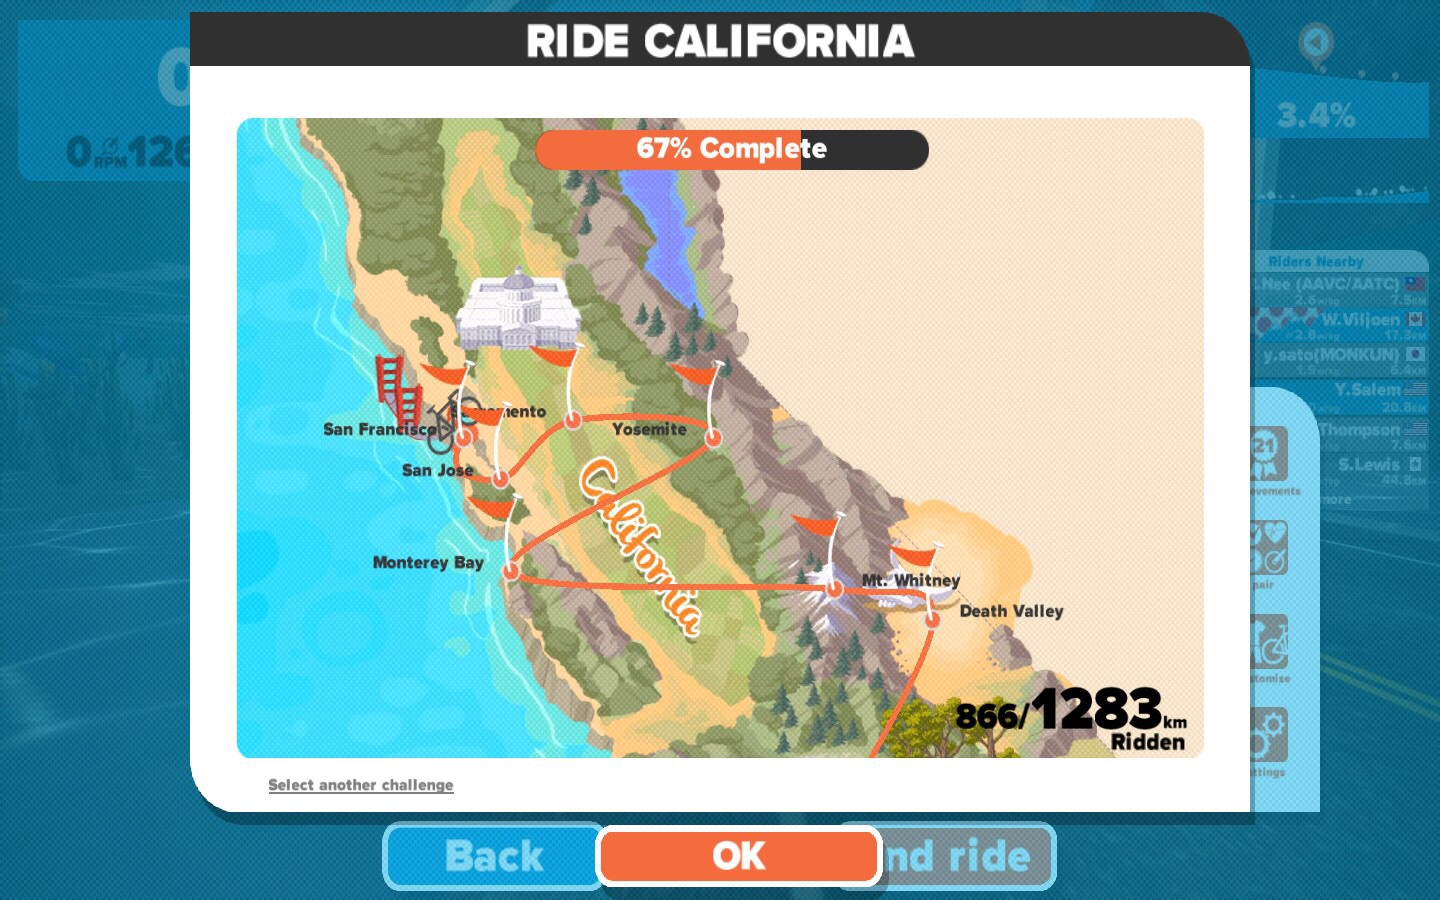 I'm about 2/3 of way to completing the @gozwift Ride California challenge.